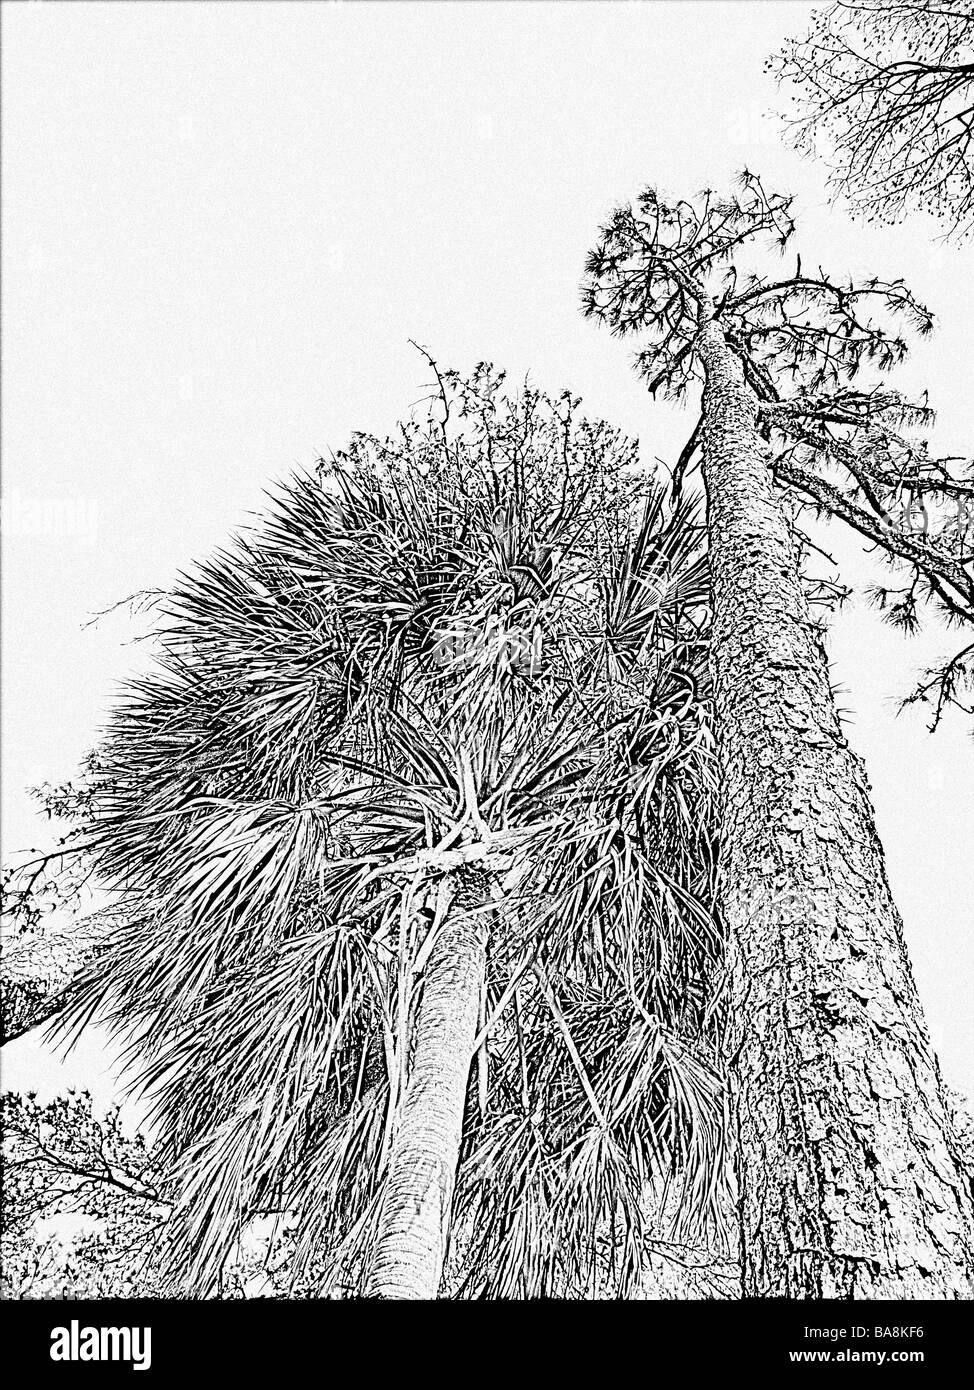 drawing effect skyward view in black and white of long leaf pine tree and leaning palm tree detailed bark and limbs - Stock Image